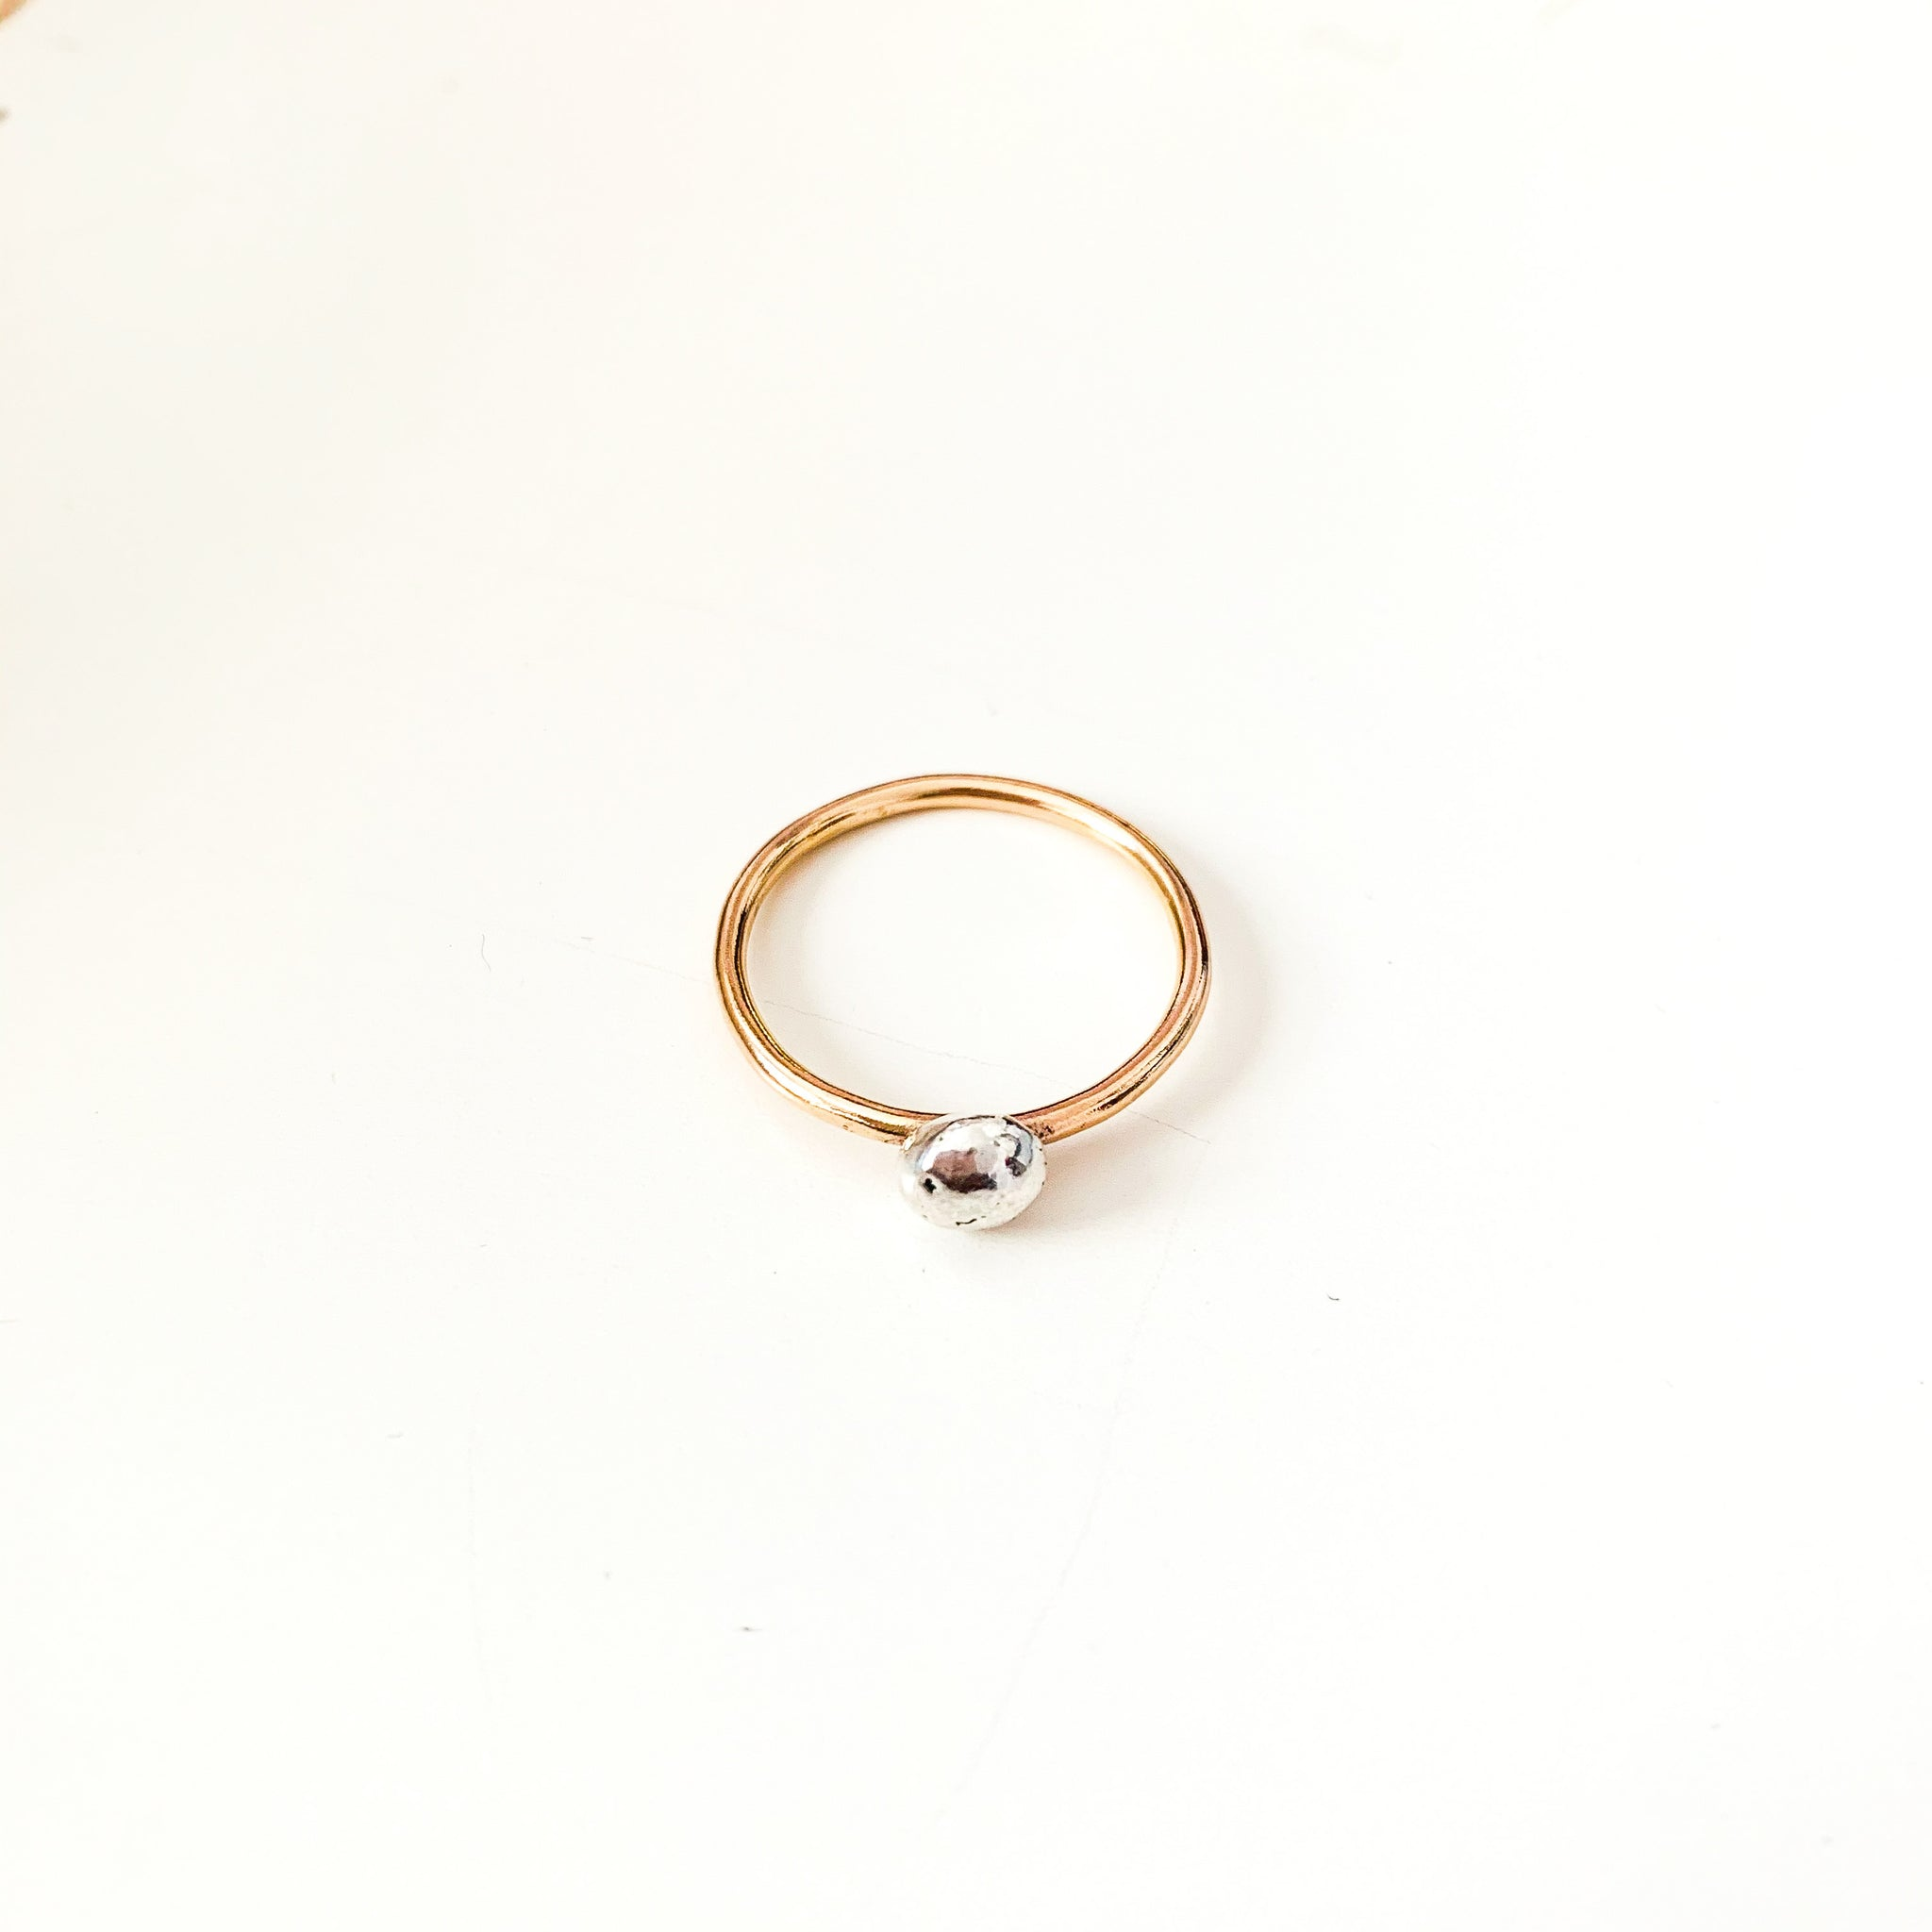 Large Organic Bubble Mixed Metal Ring